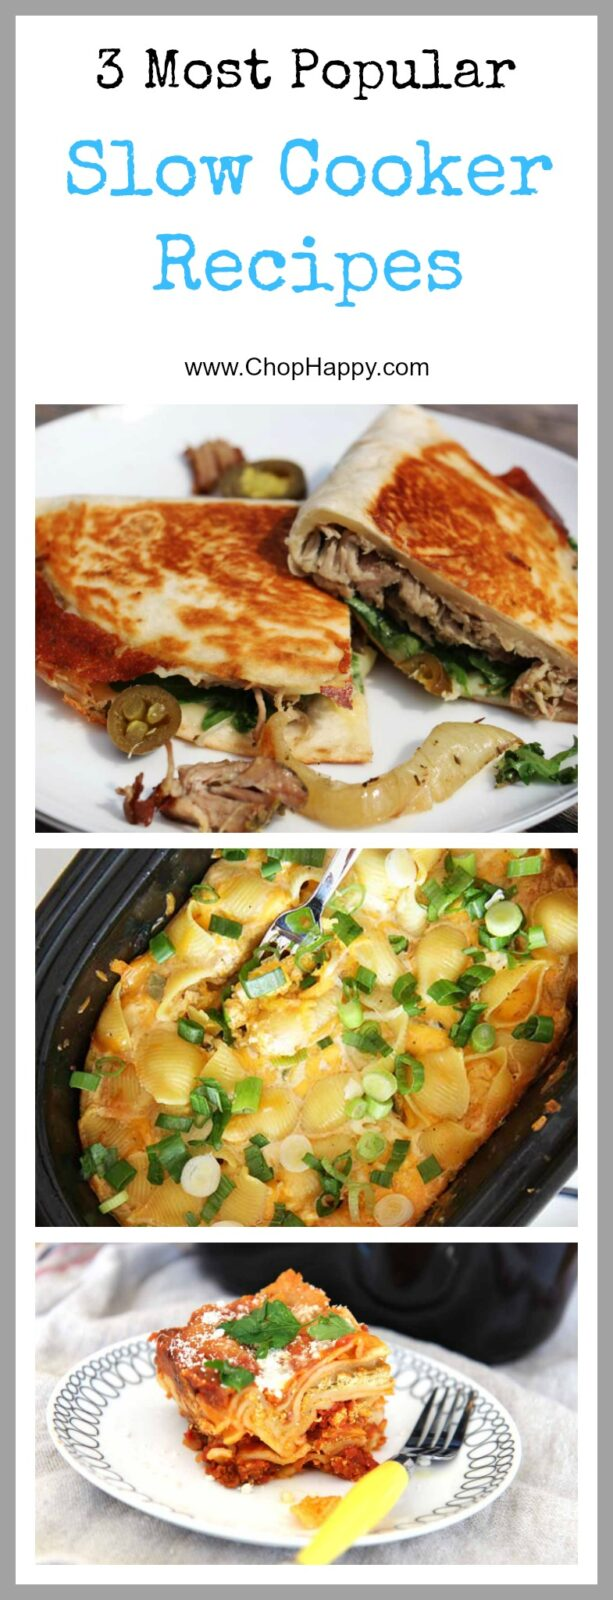 3 Most Popular Slow Cooker Recipes - because they are easy and so decadent. Grab your crock pot, cheese, pork, and pasta and lets get cooking. www.ChopHappy.com